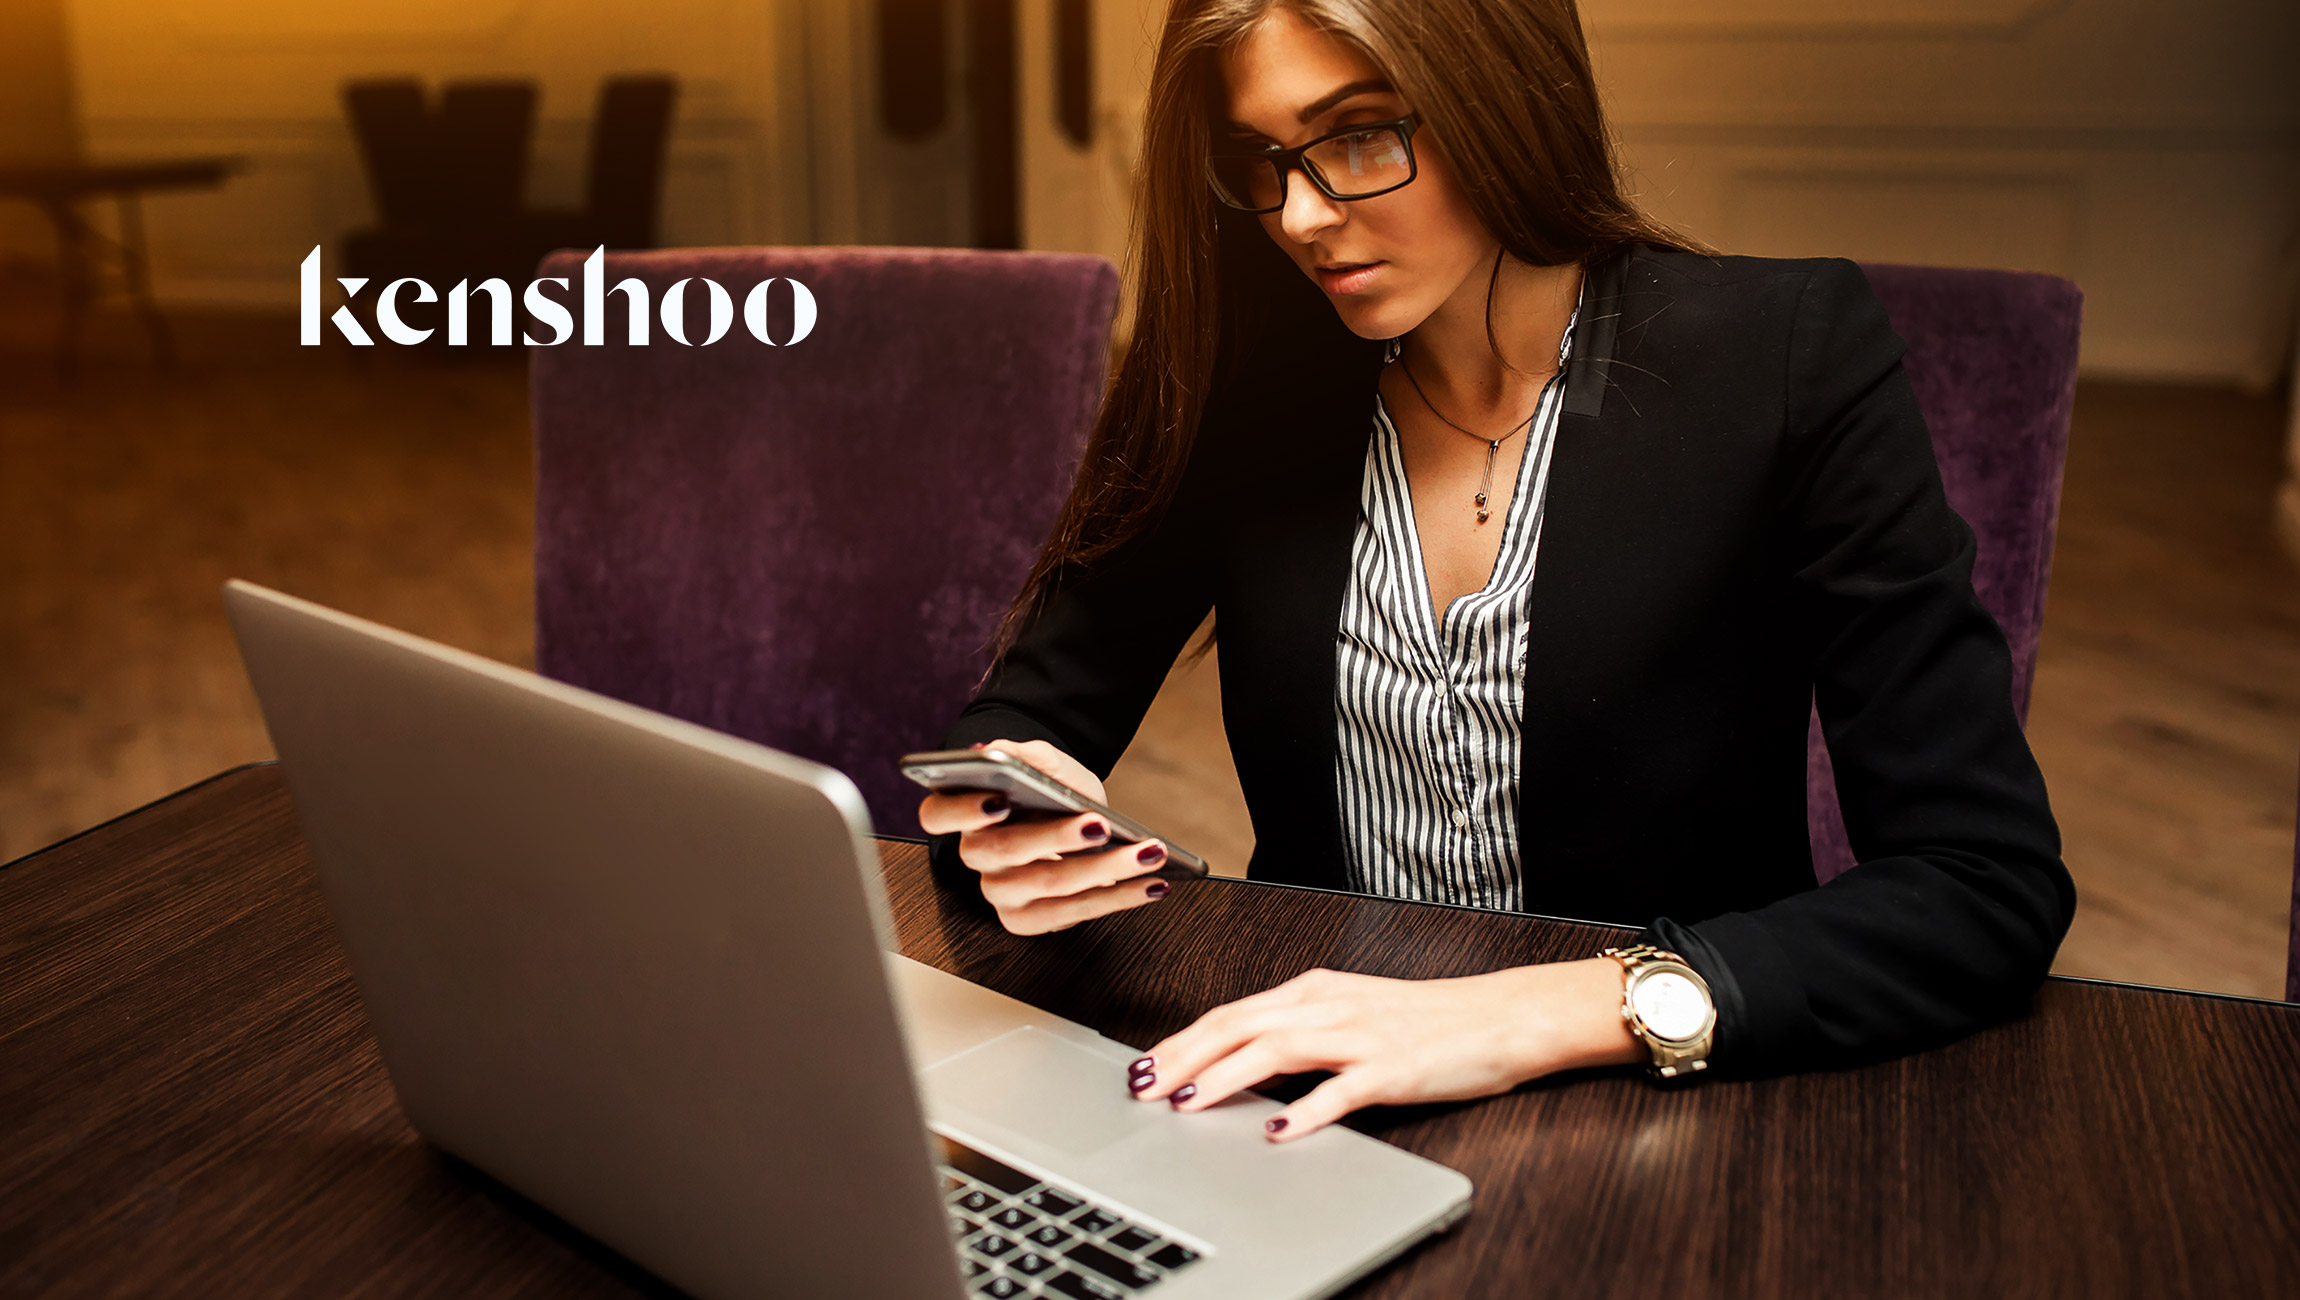 Kenshoo Launches Full Support for Amazon's Advertising API in Japan